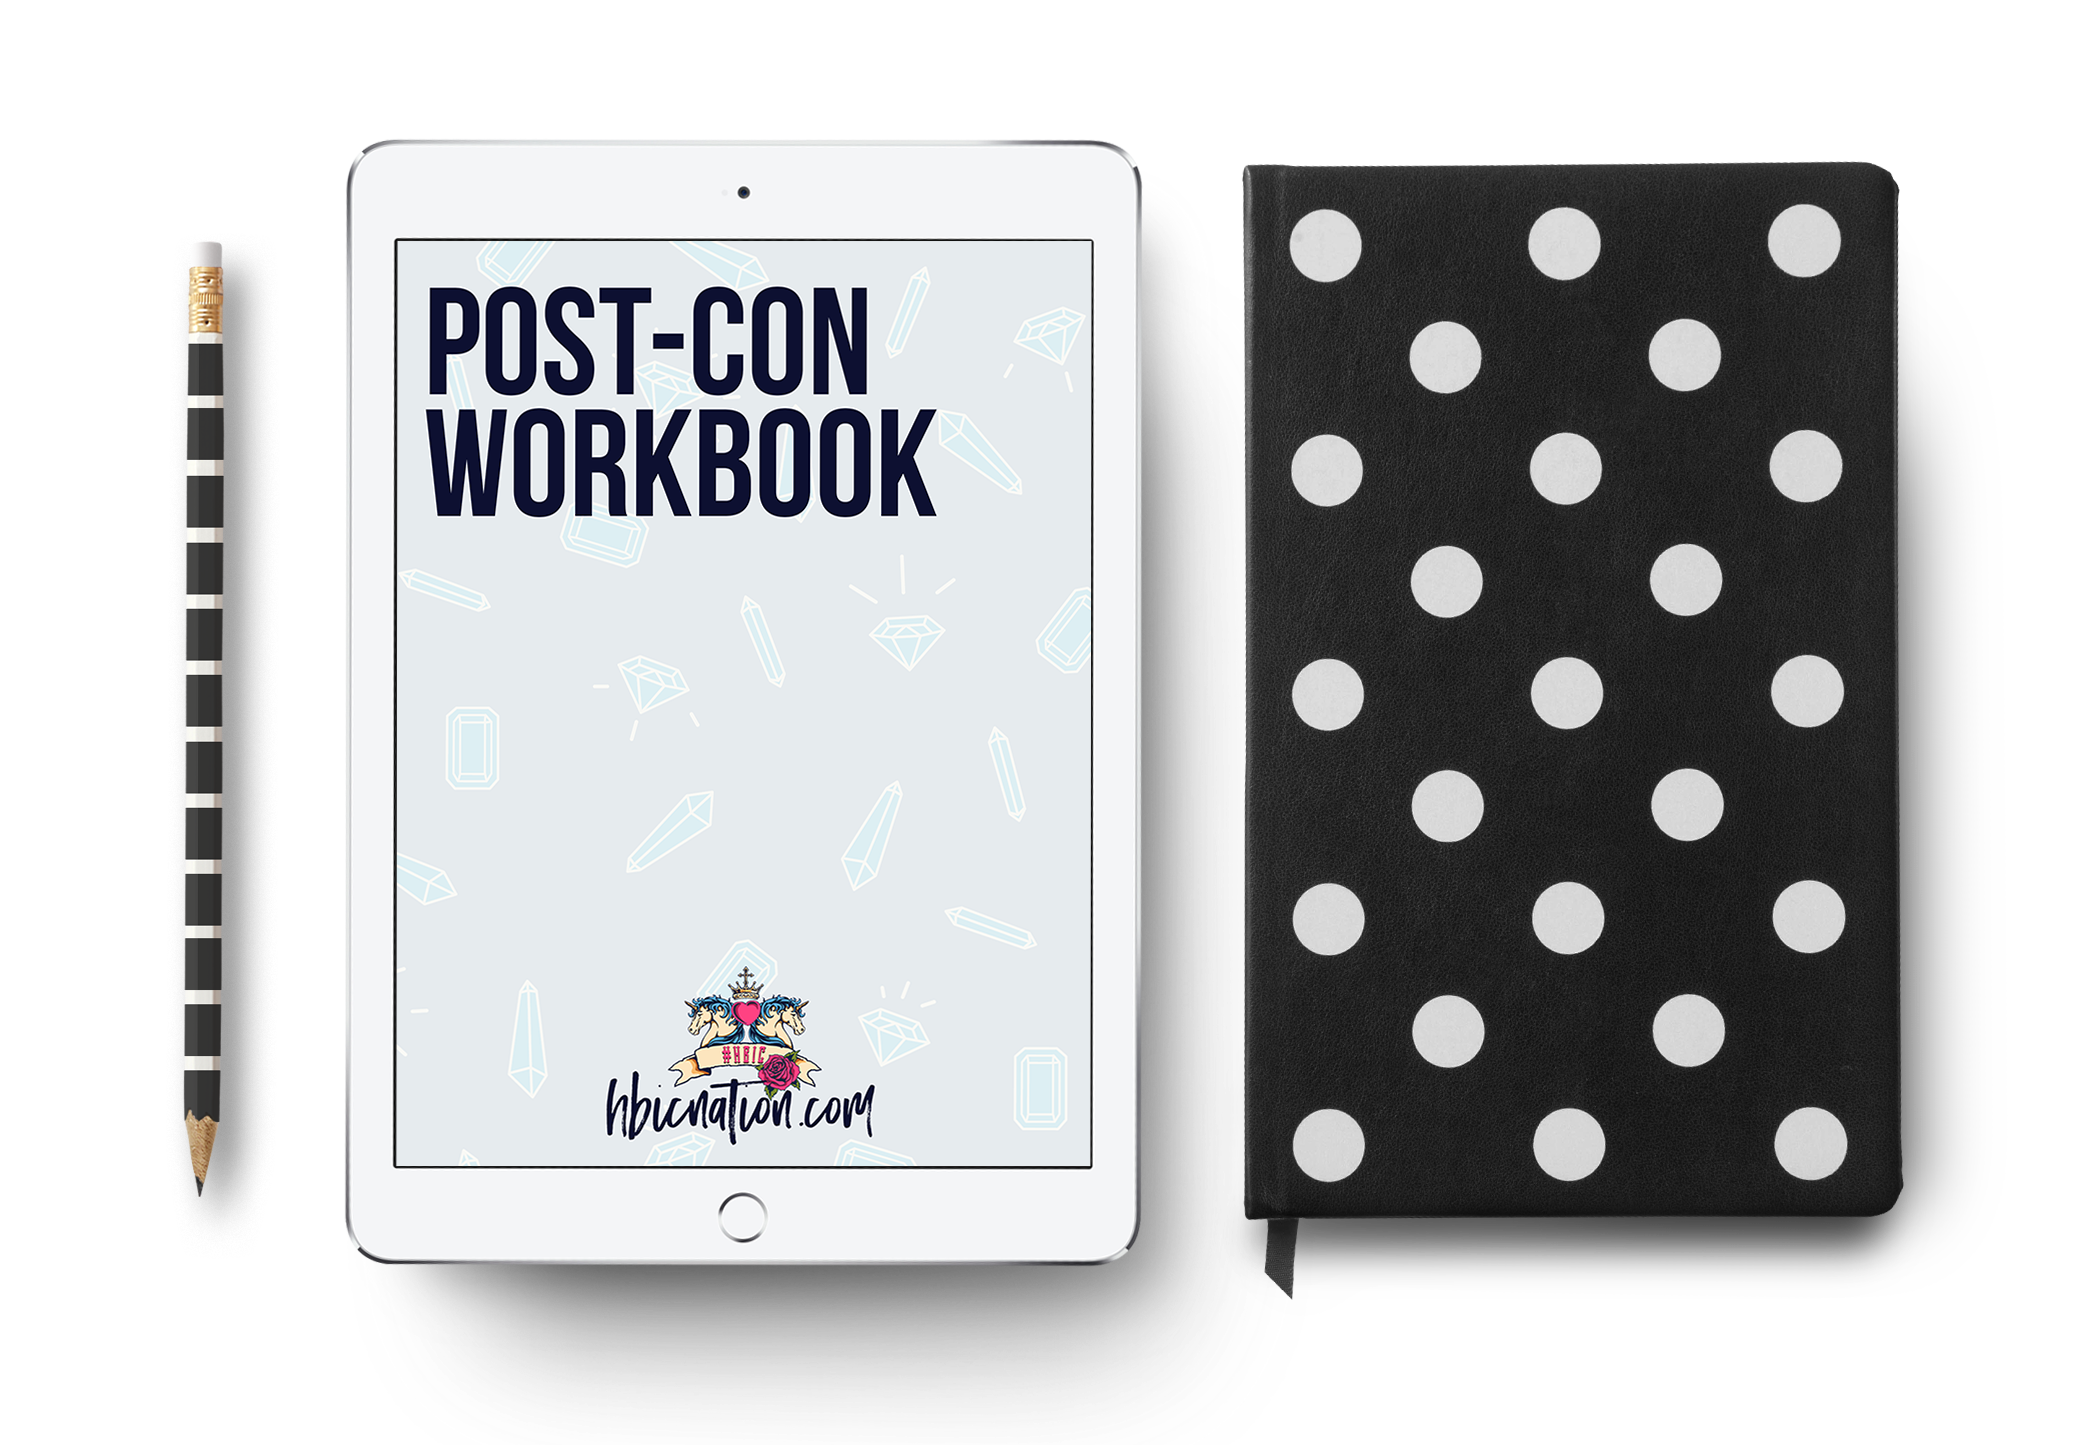 Post Conference Workbook